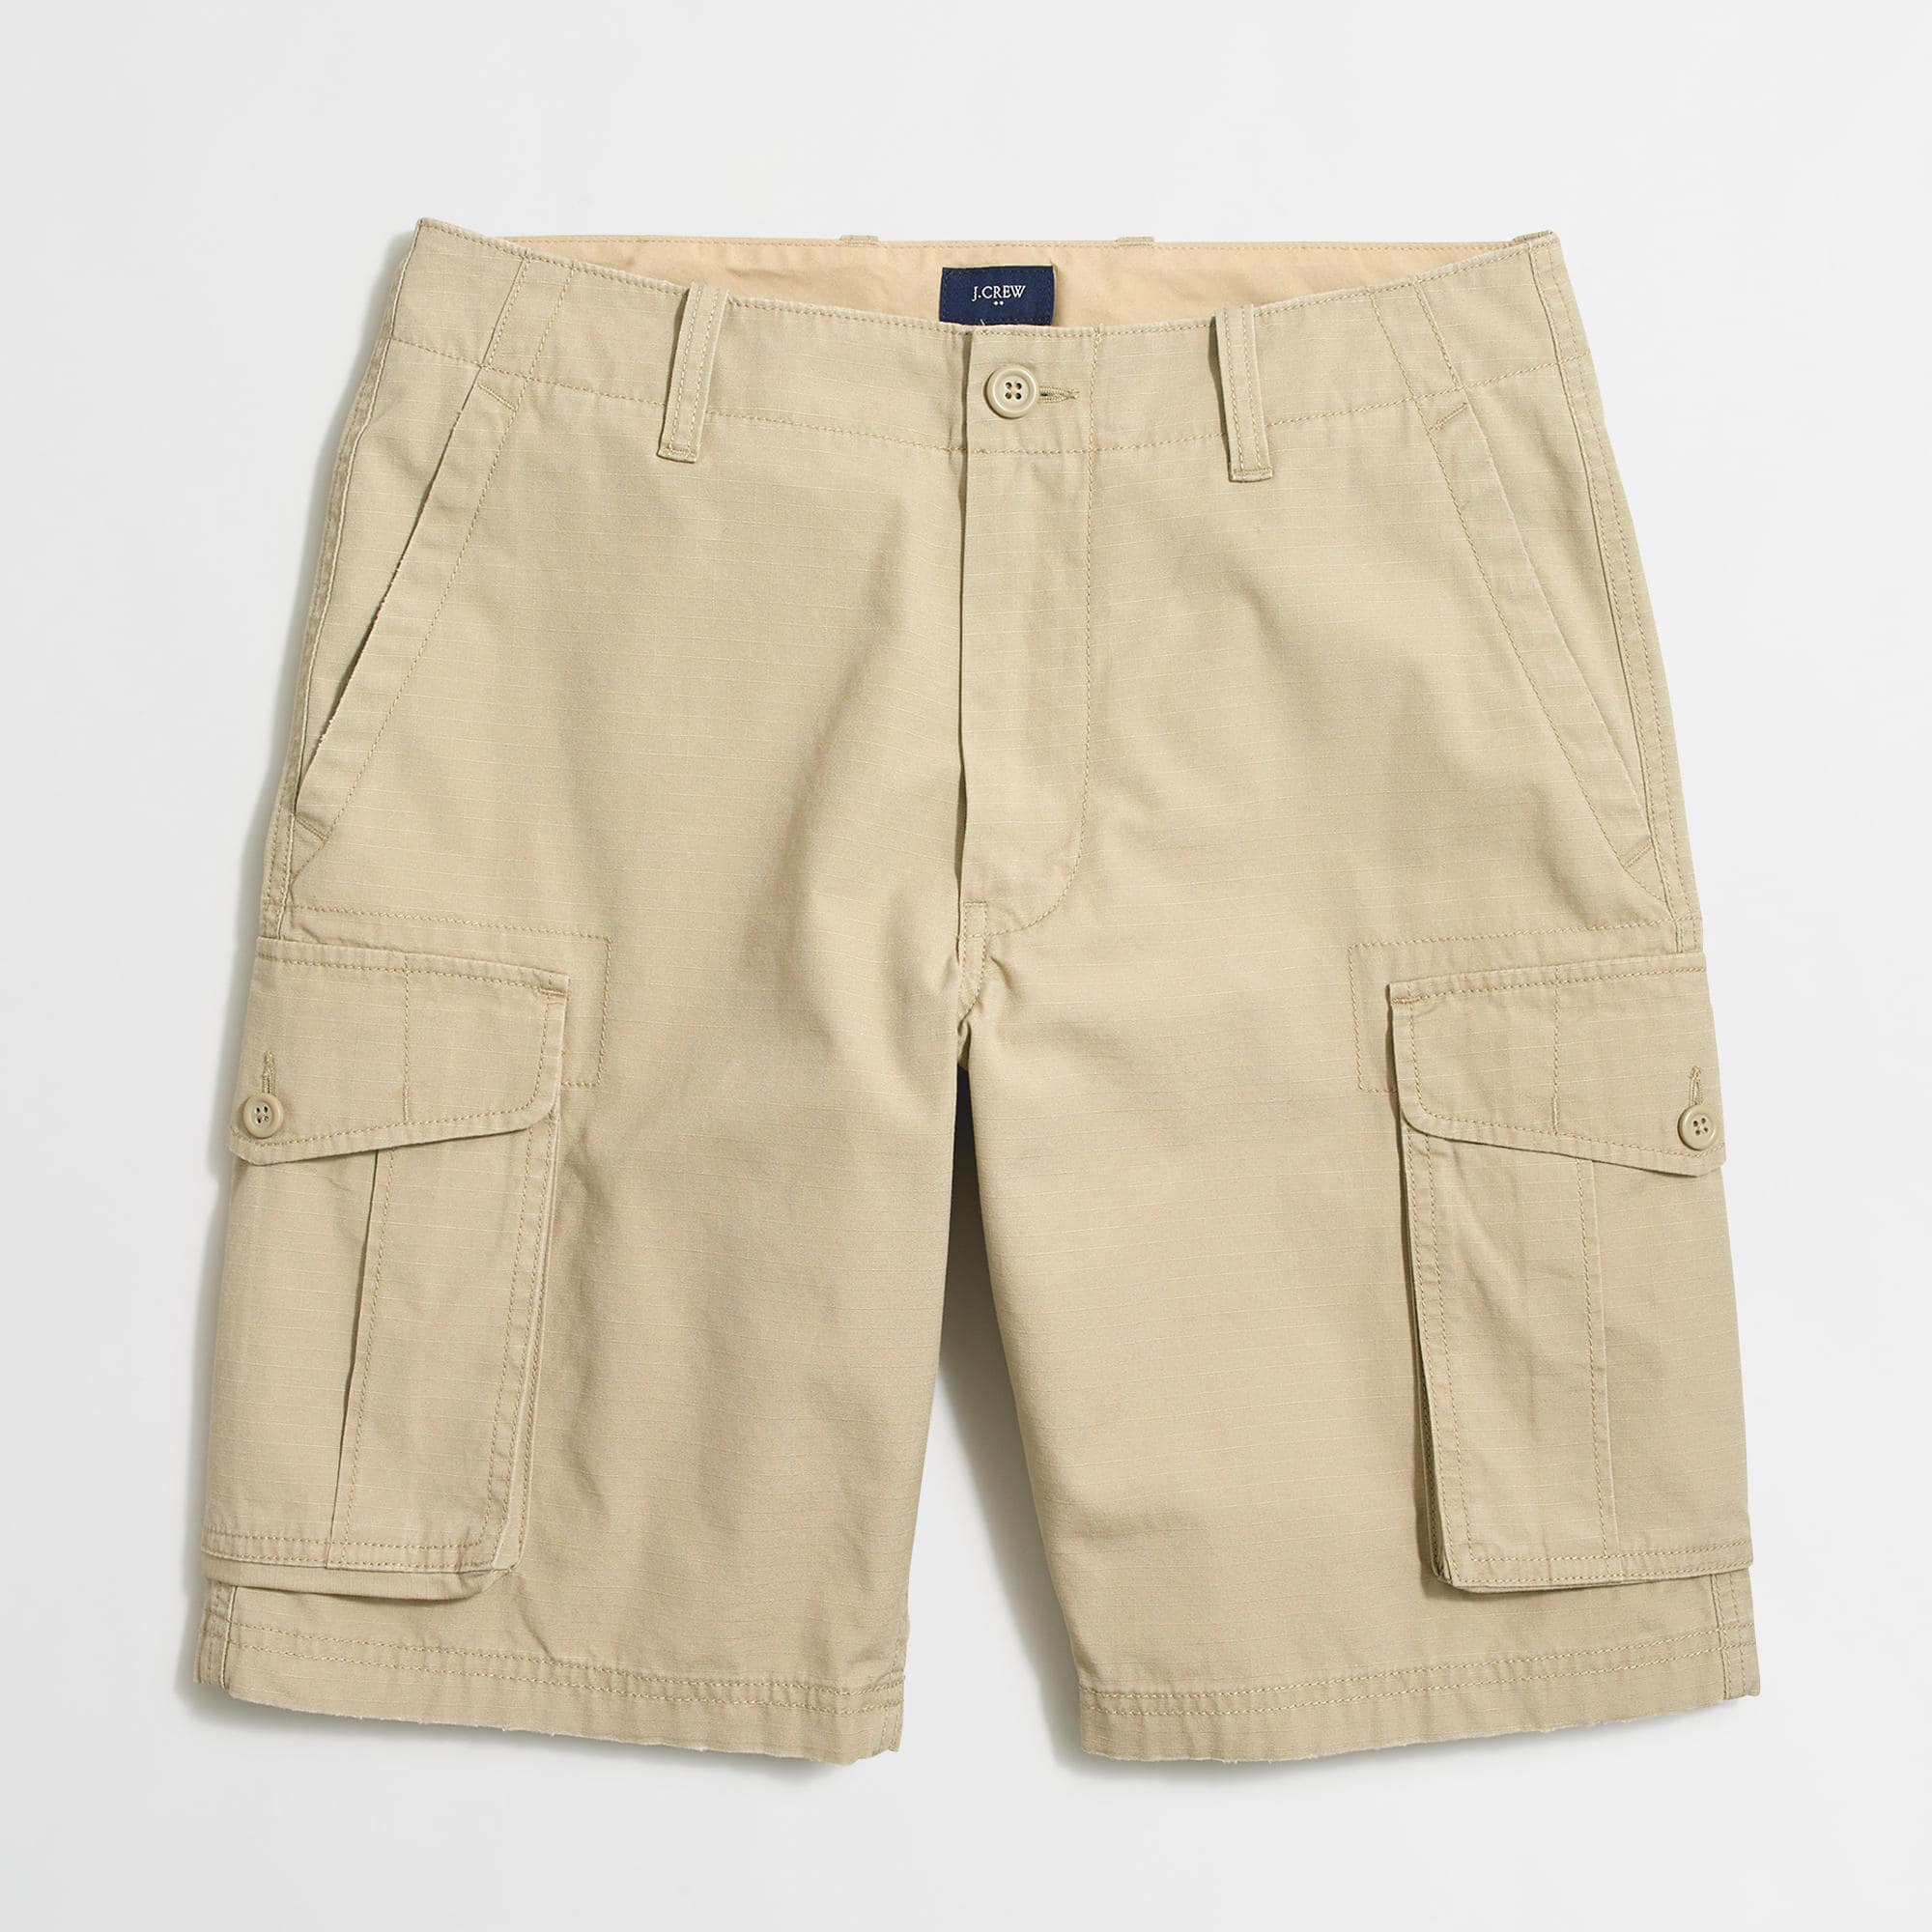 Factory Men's Cargo Shorts $9.99 AC + FS @ J. Crew Factory